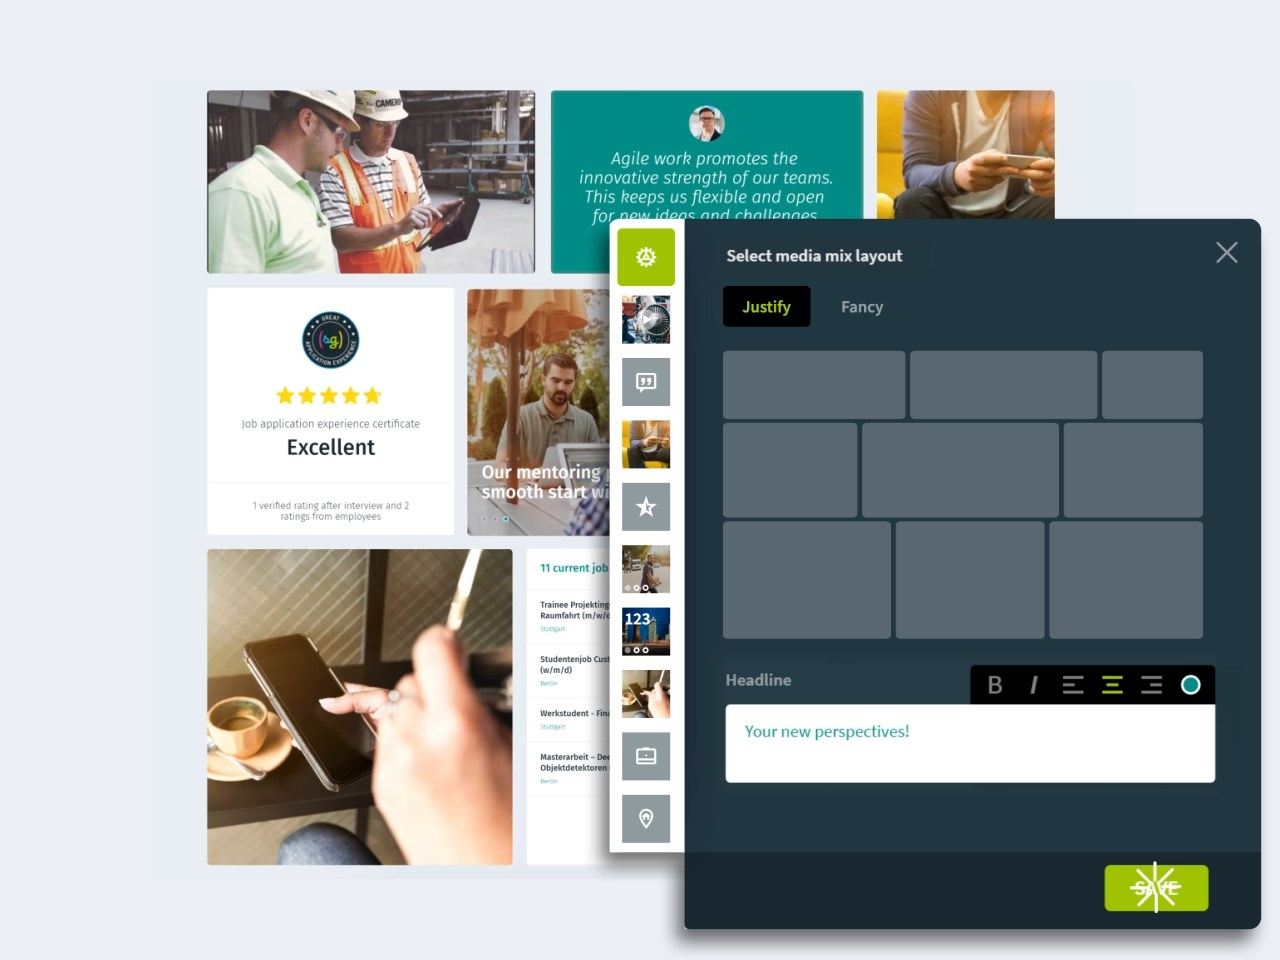 softgarden design career pages